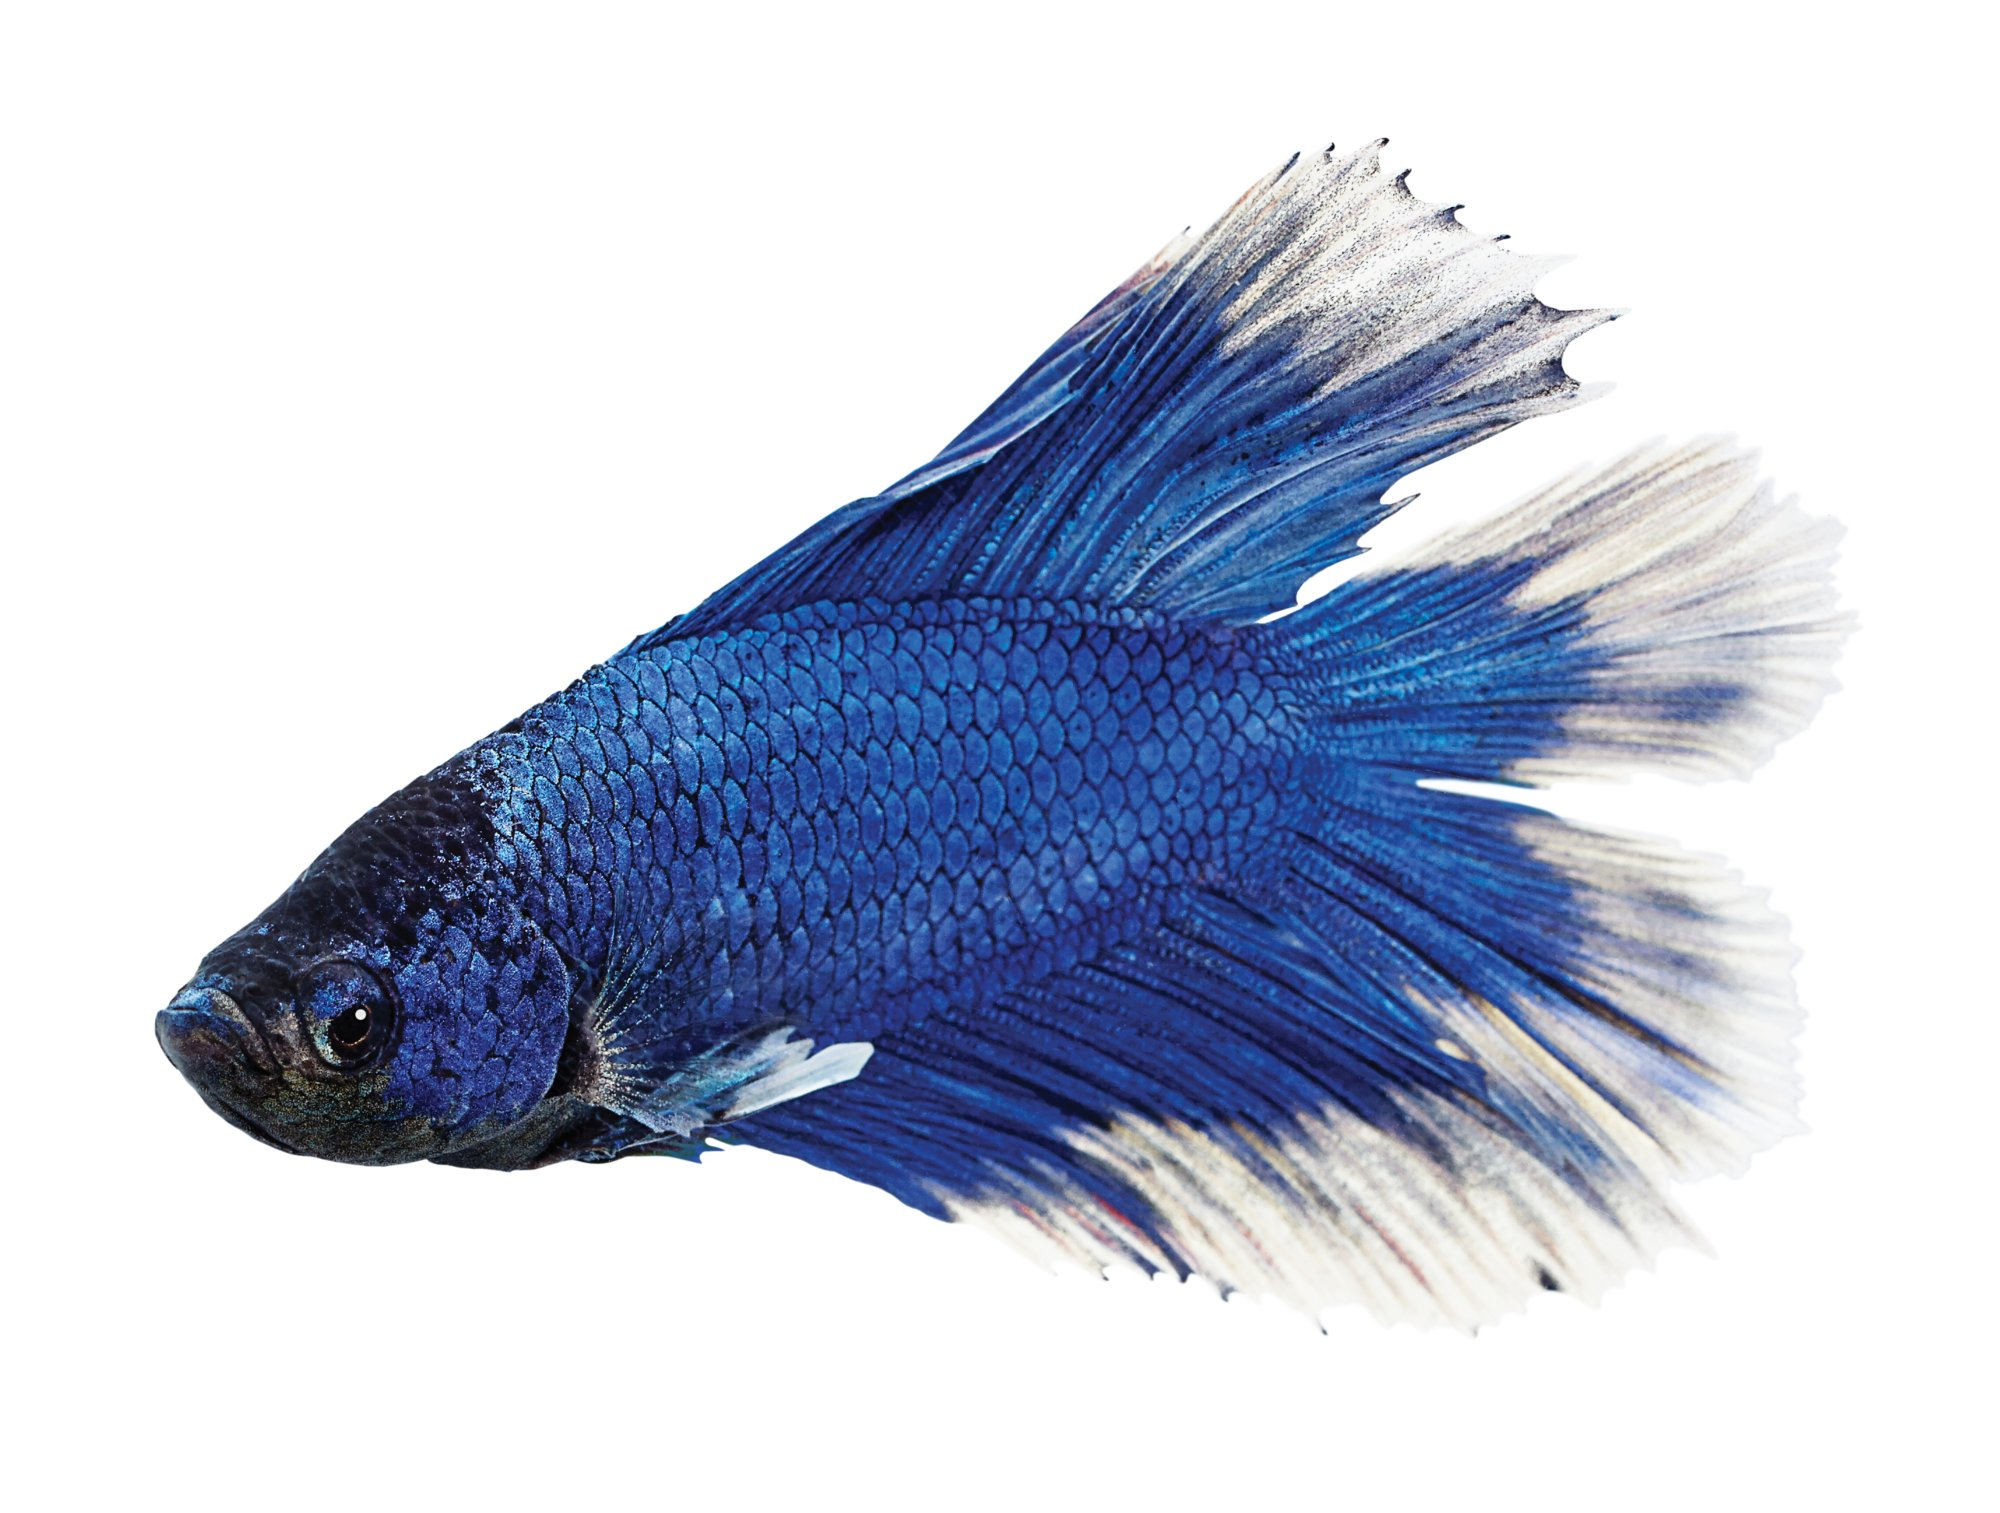 Iphone X Off White Wallpaper Male Doubletail Betta Petco